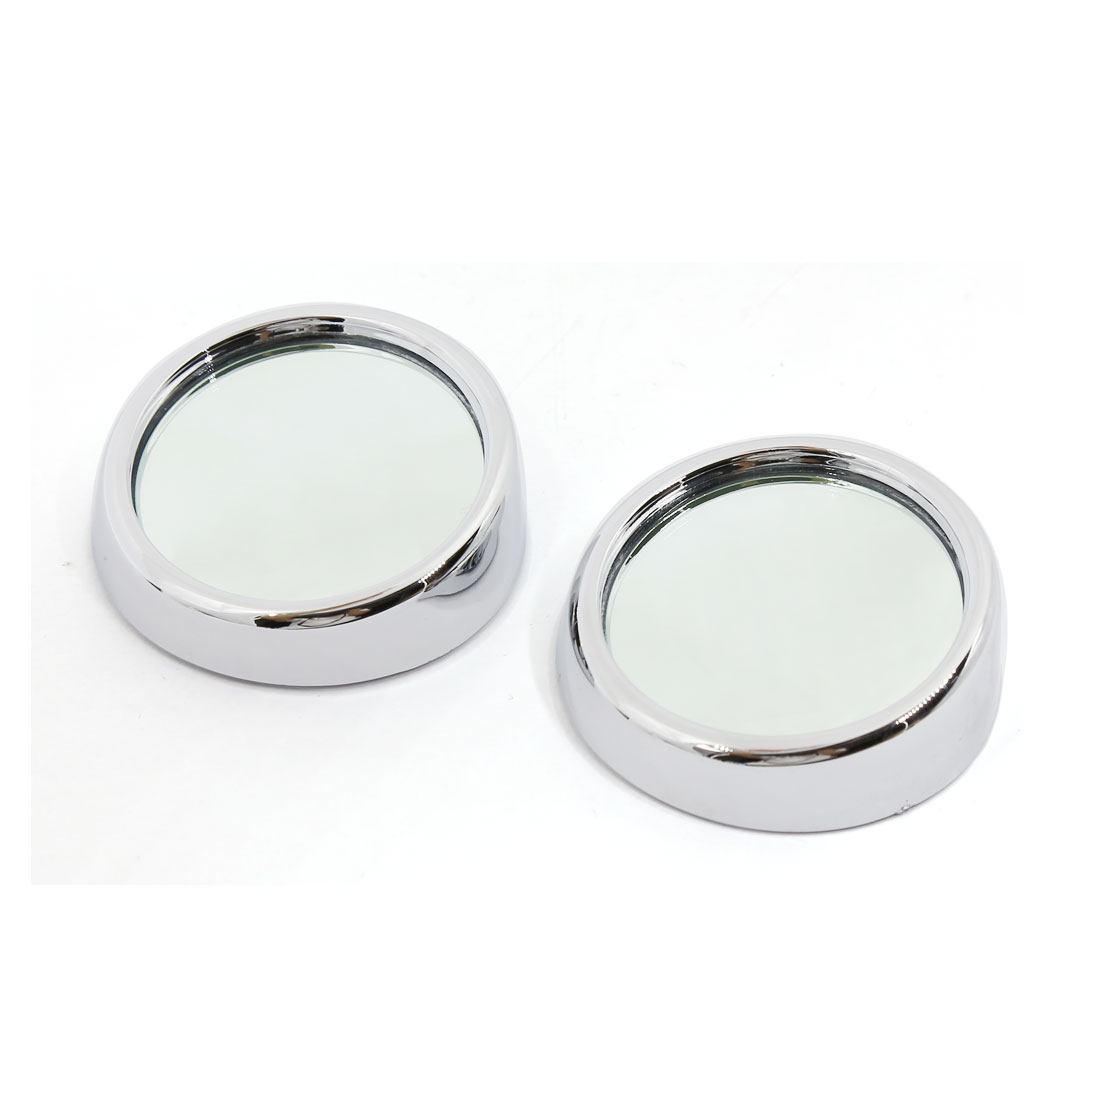 2 Pcs Universal Adhesive Wide Angle Convex Car Blind Spot Rearview Mirror Sliver Tone